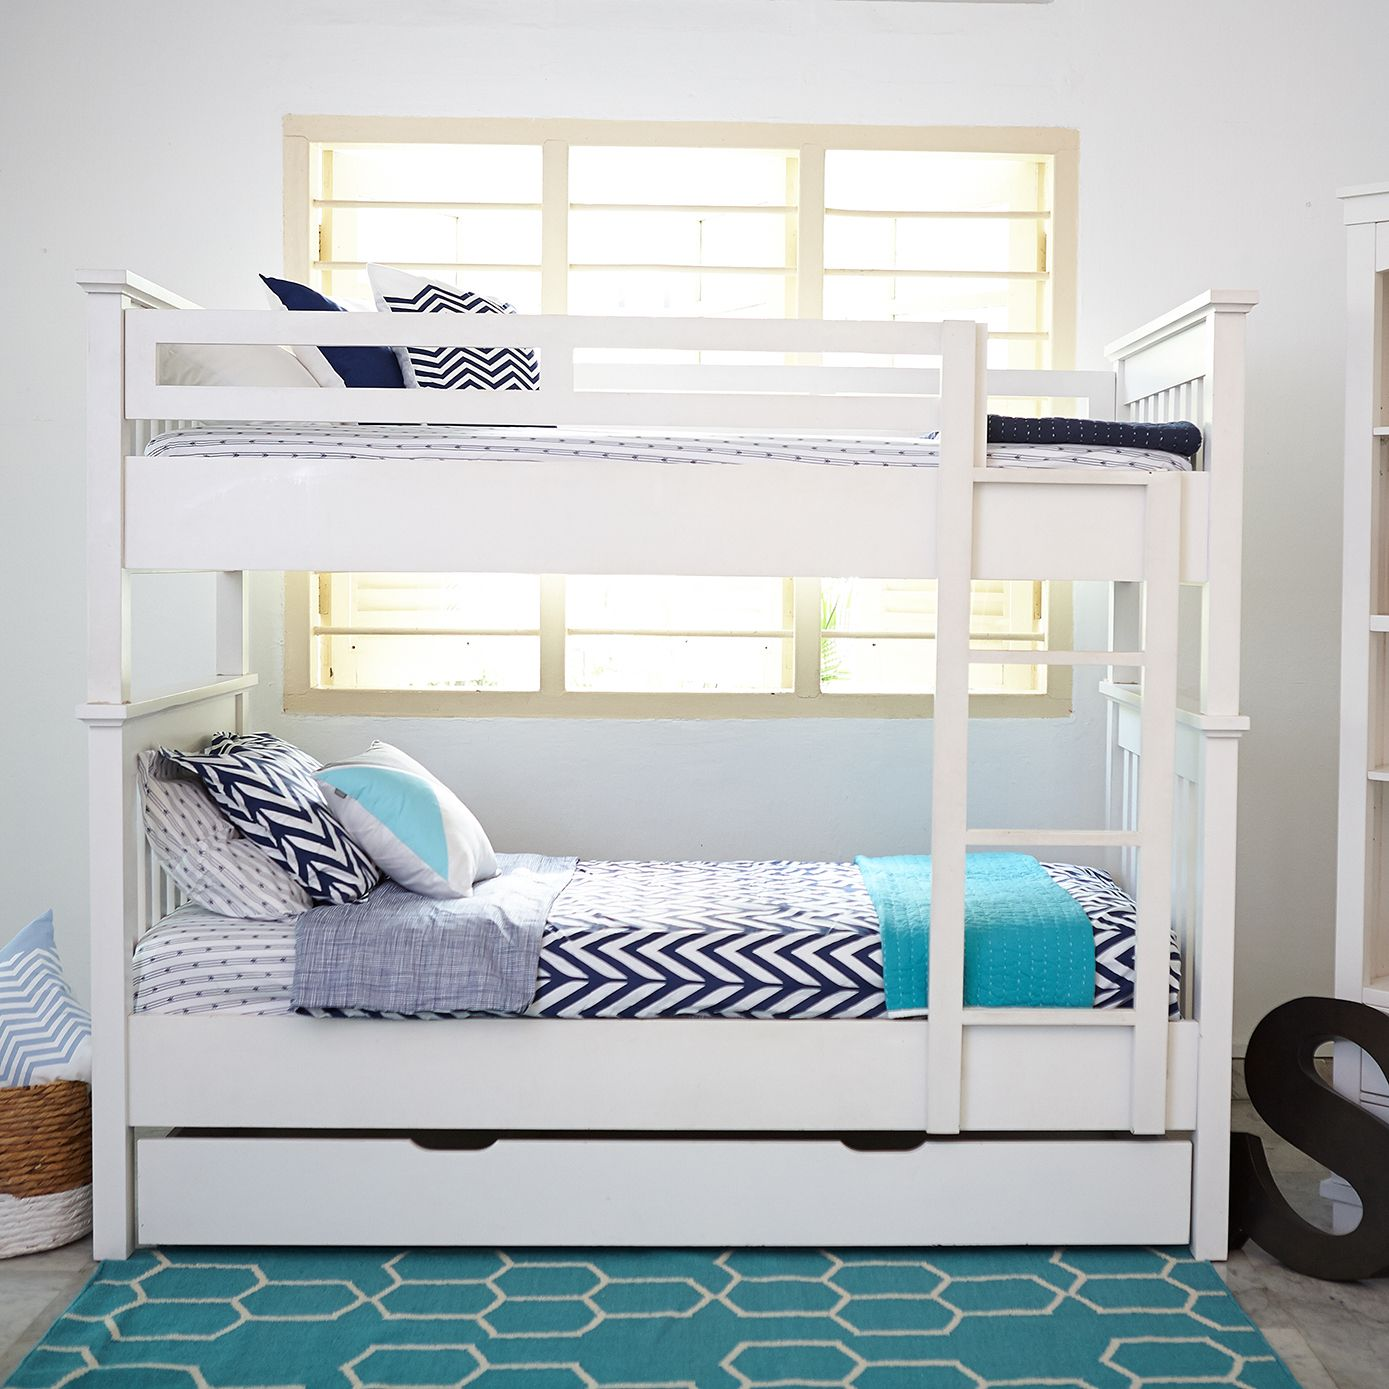 Kids double decker bed for sale ni night offering best for Double deck bed images